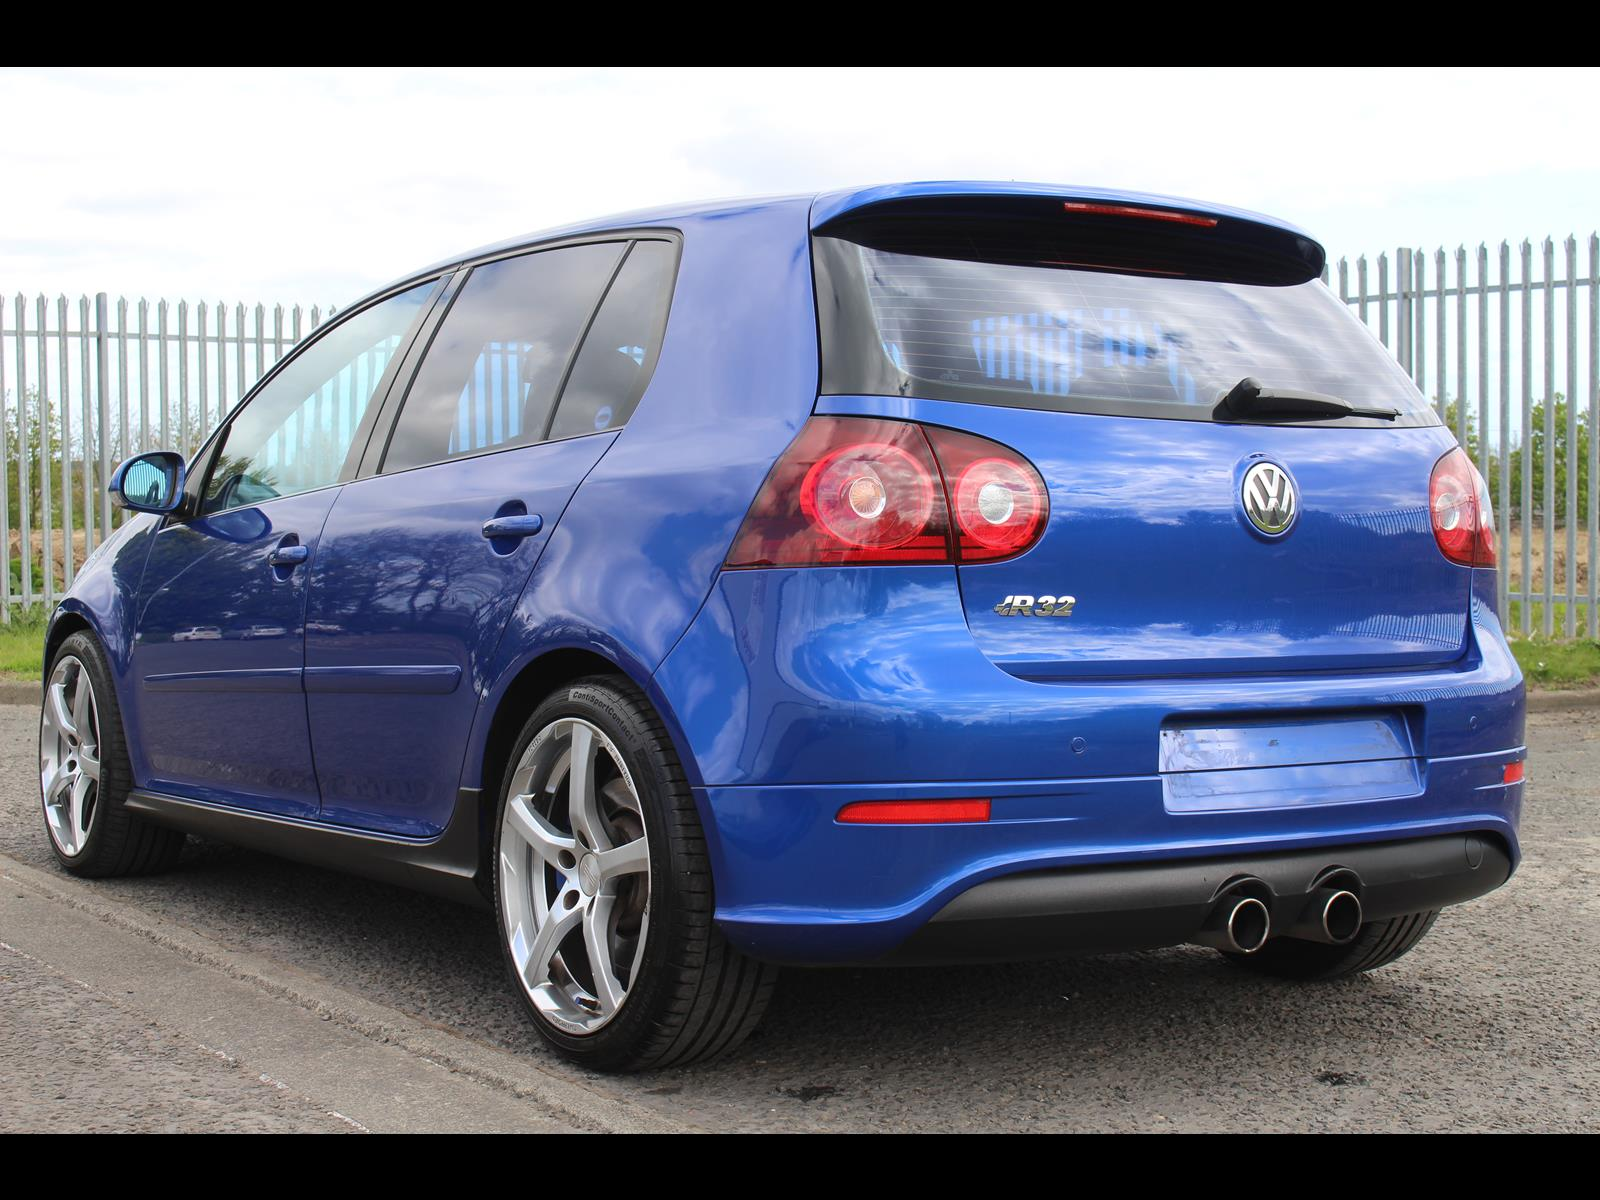 2006 volkswagen golf r32 dsg box. Black Bedroom Furniture Sets. Home Design Ideas